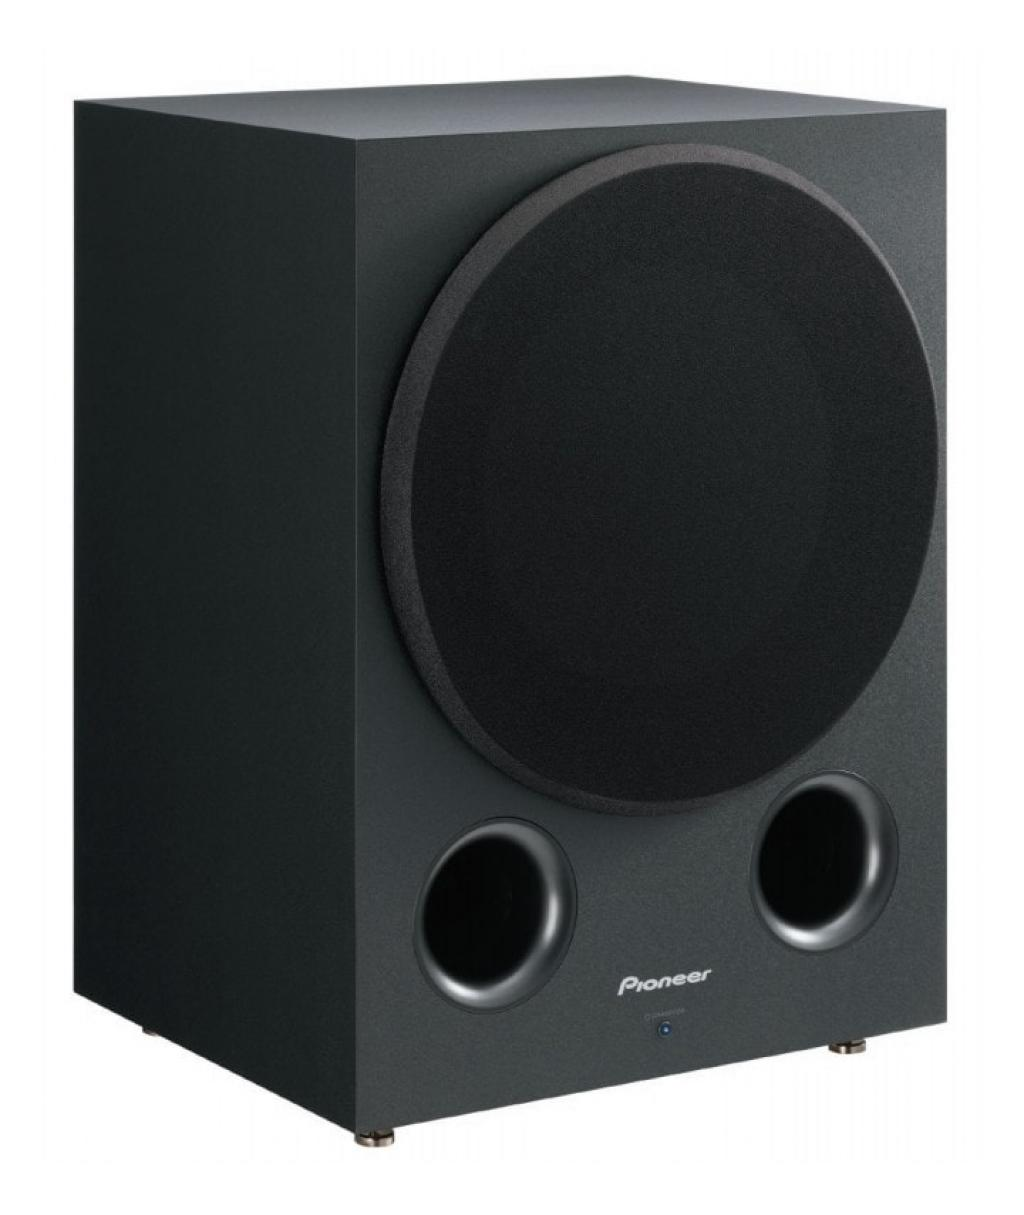 Subwoofer Pioneer S-62W